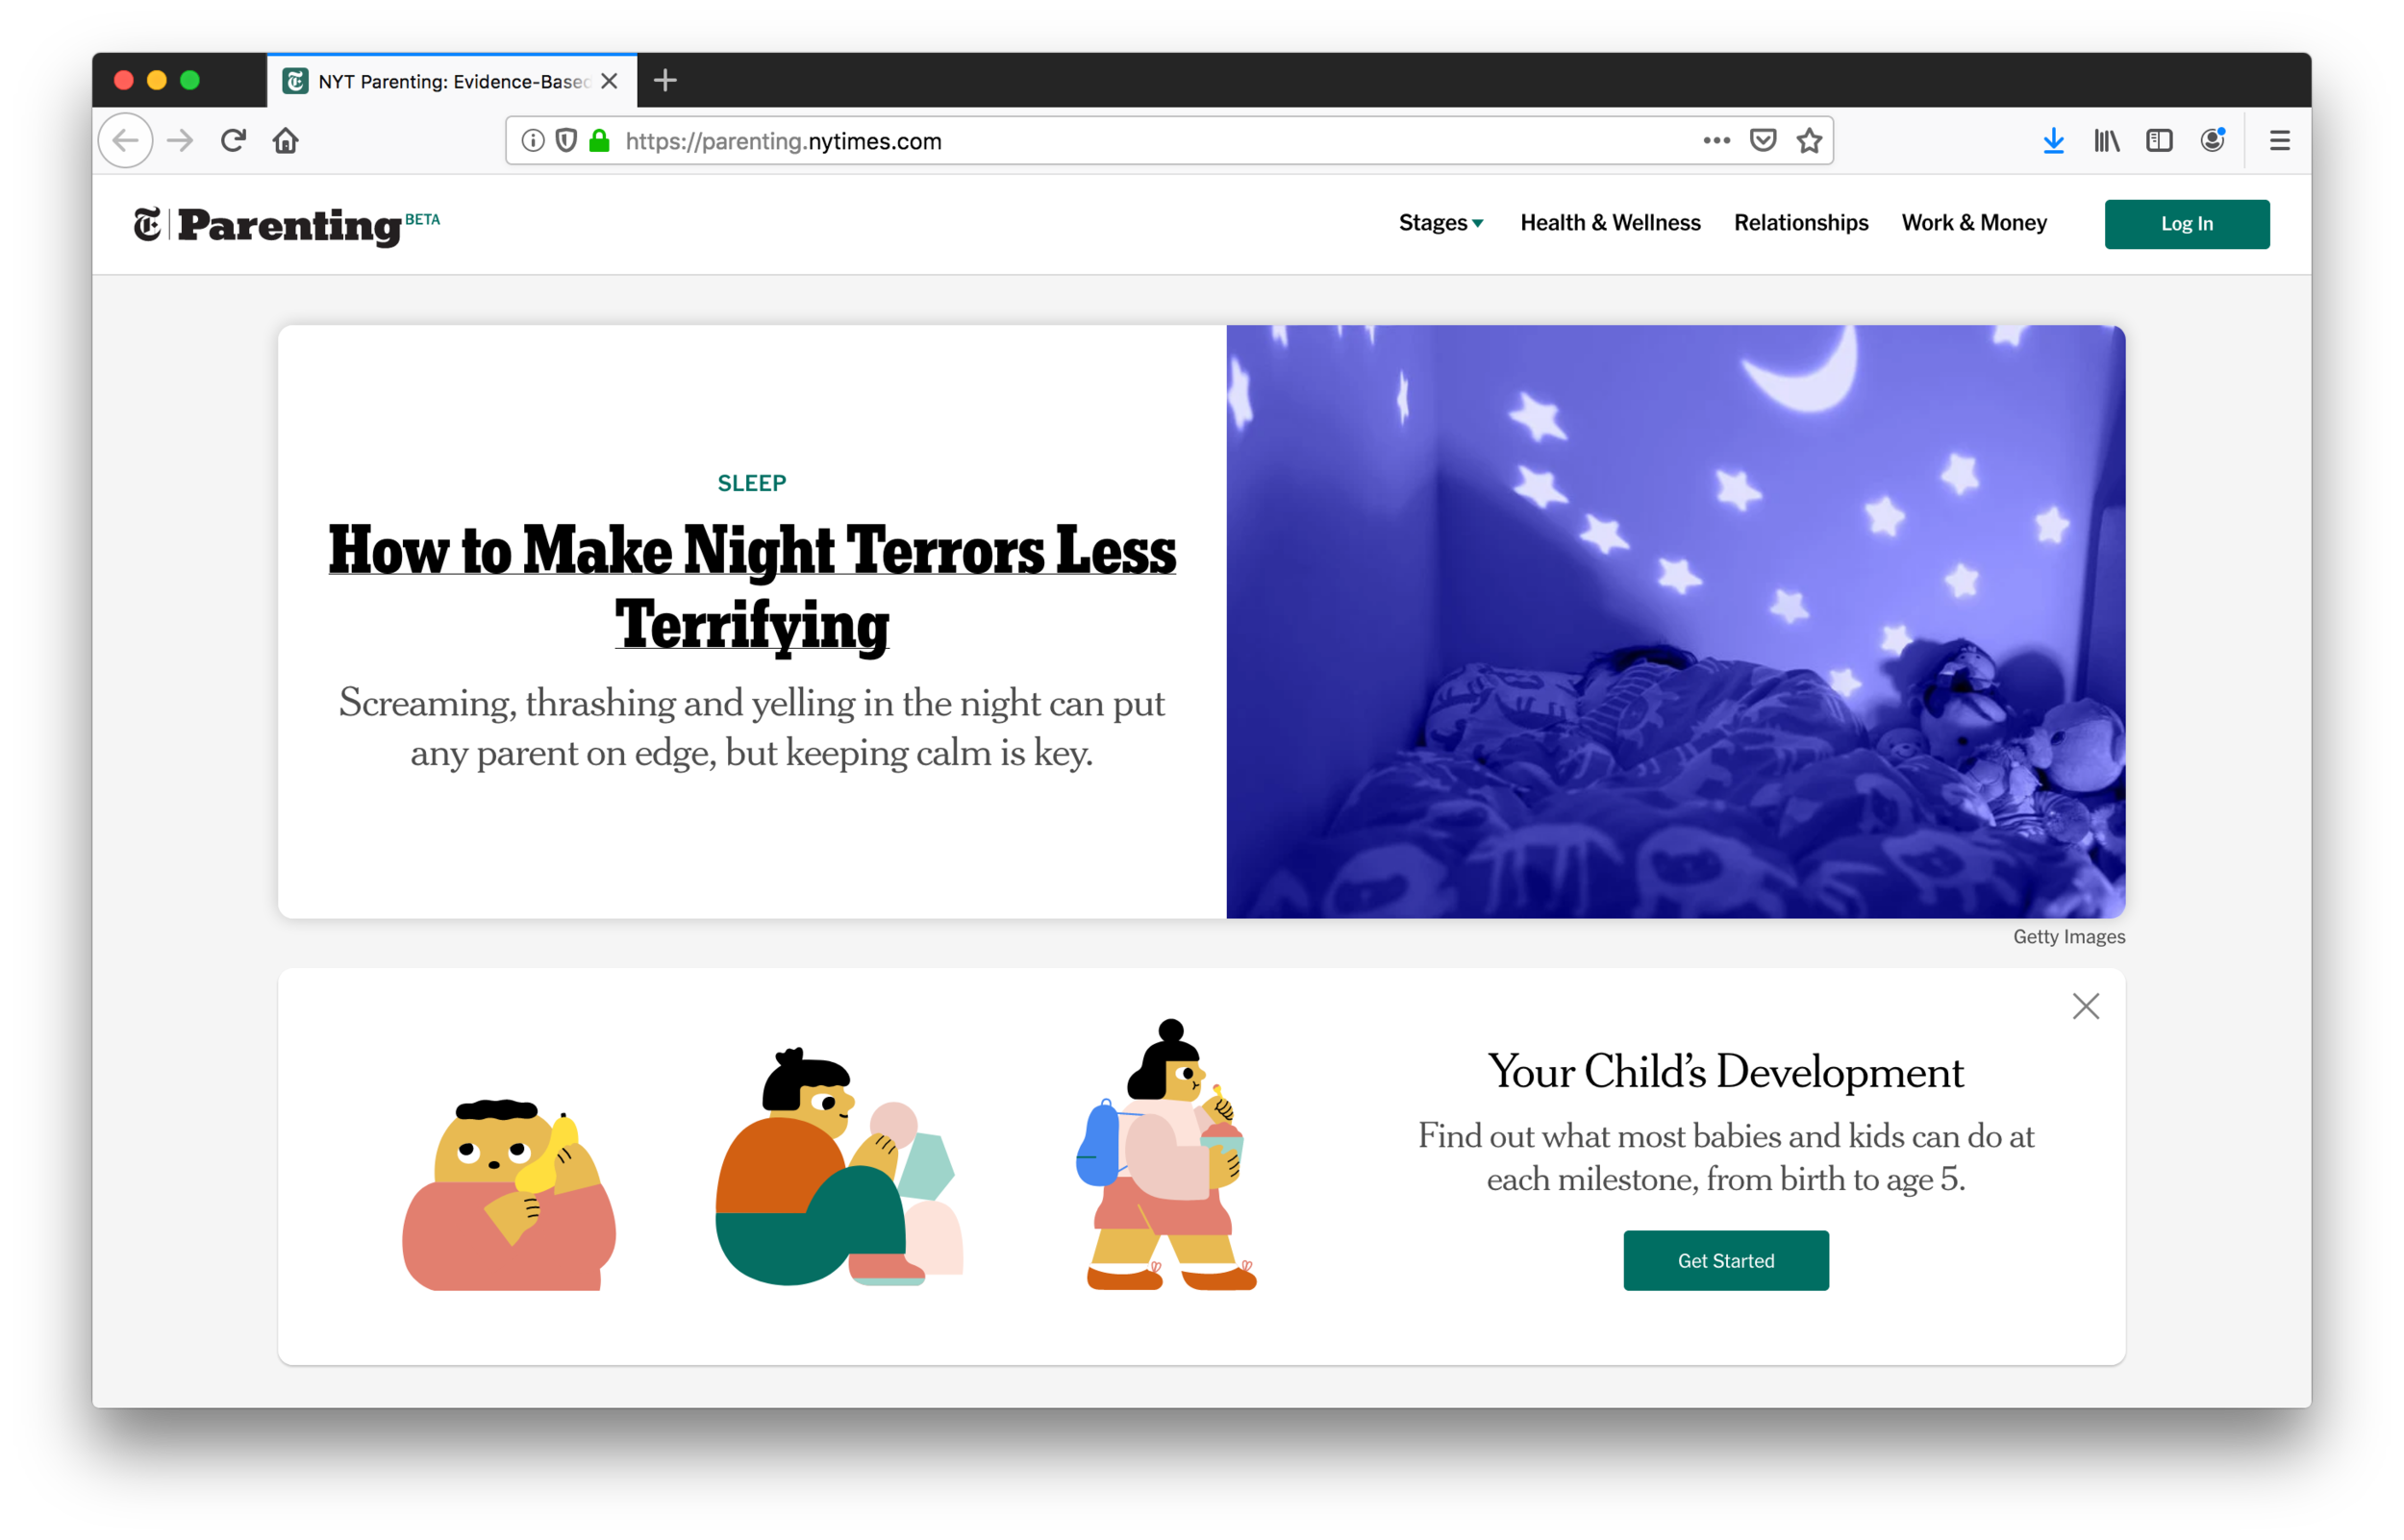 NY Times Parenting